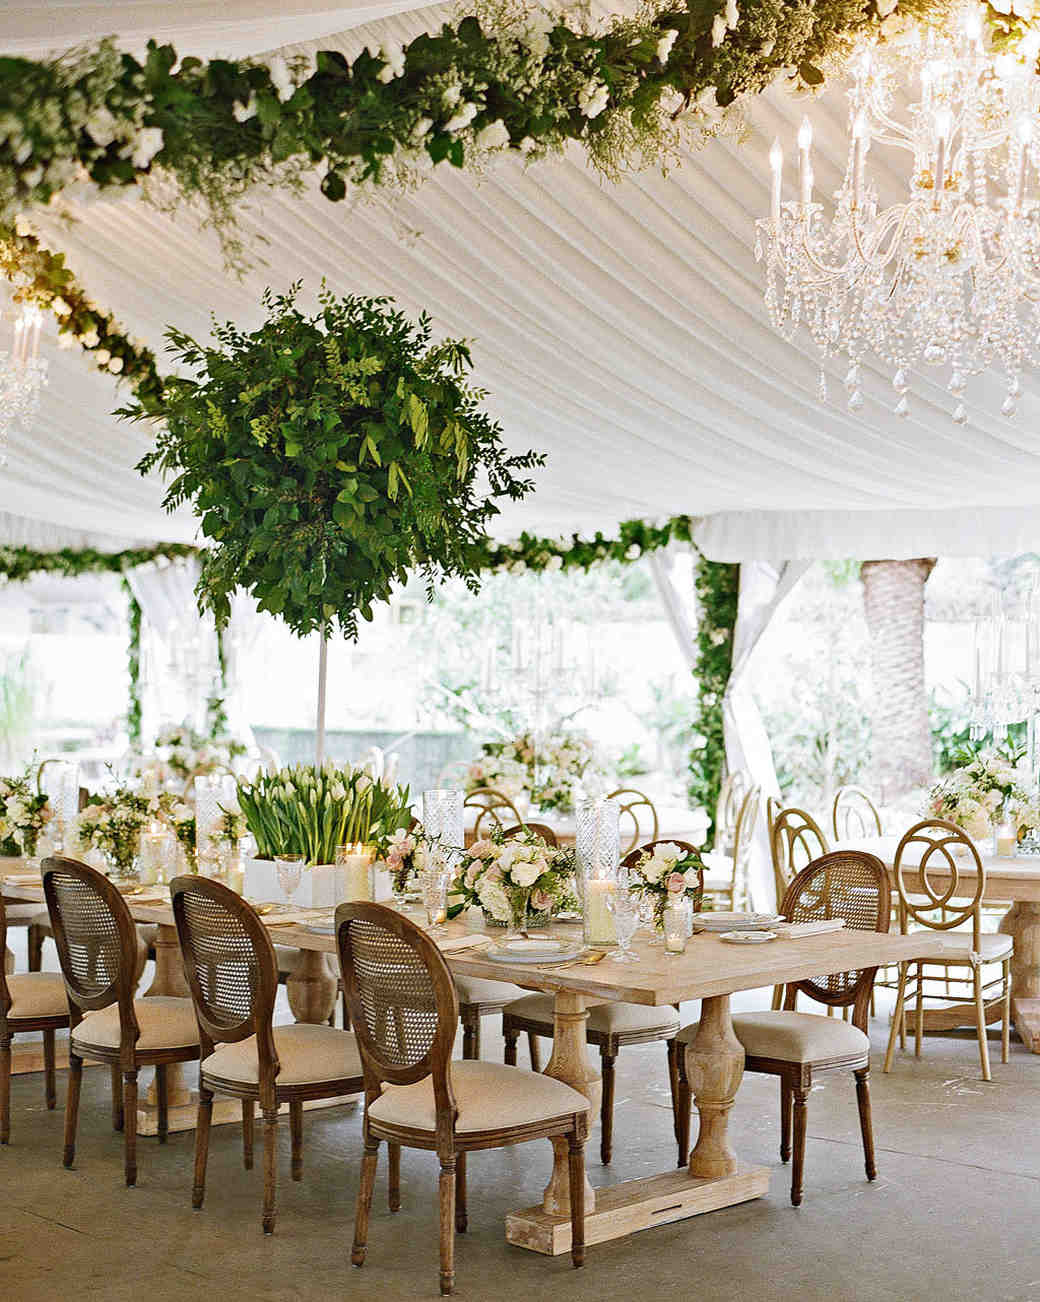 84 Candle Centerpieces That Will Light Up Your Reception | Martha ...